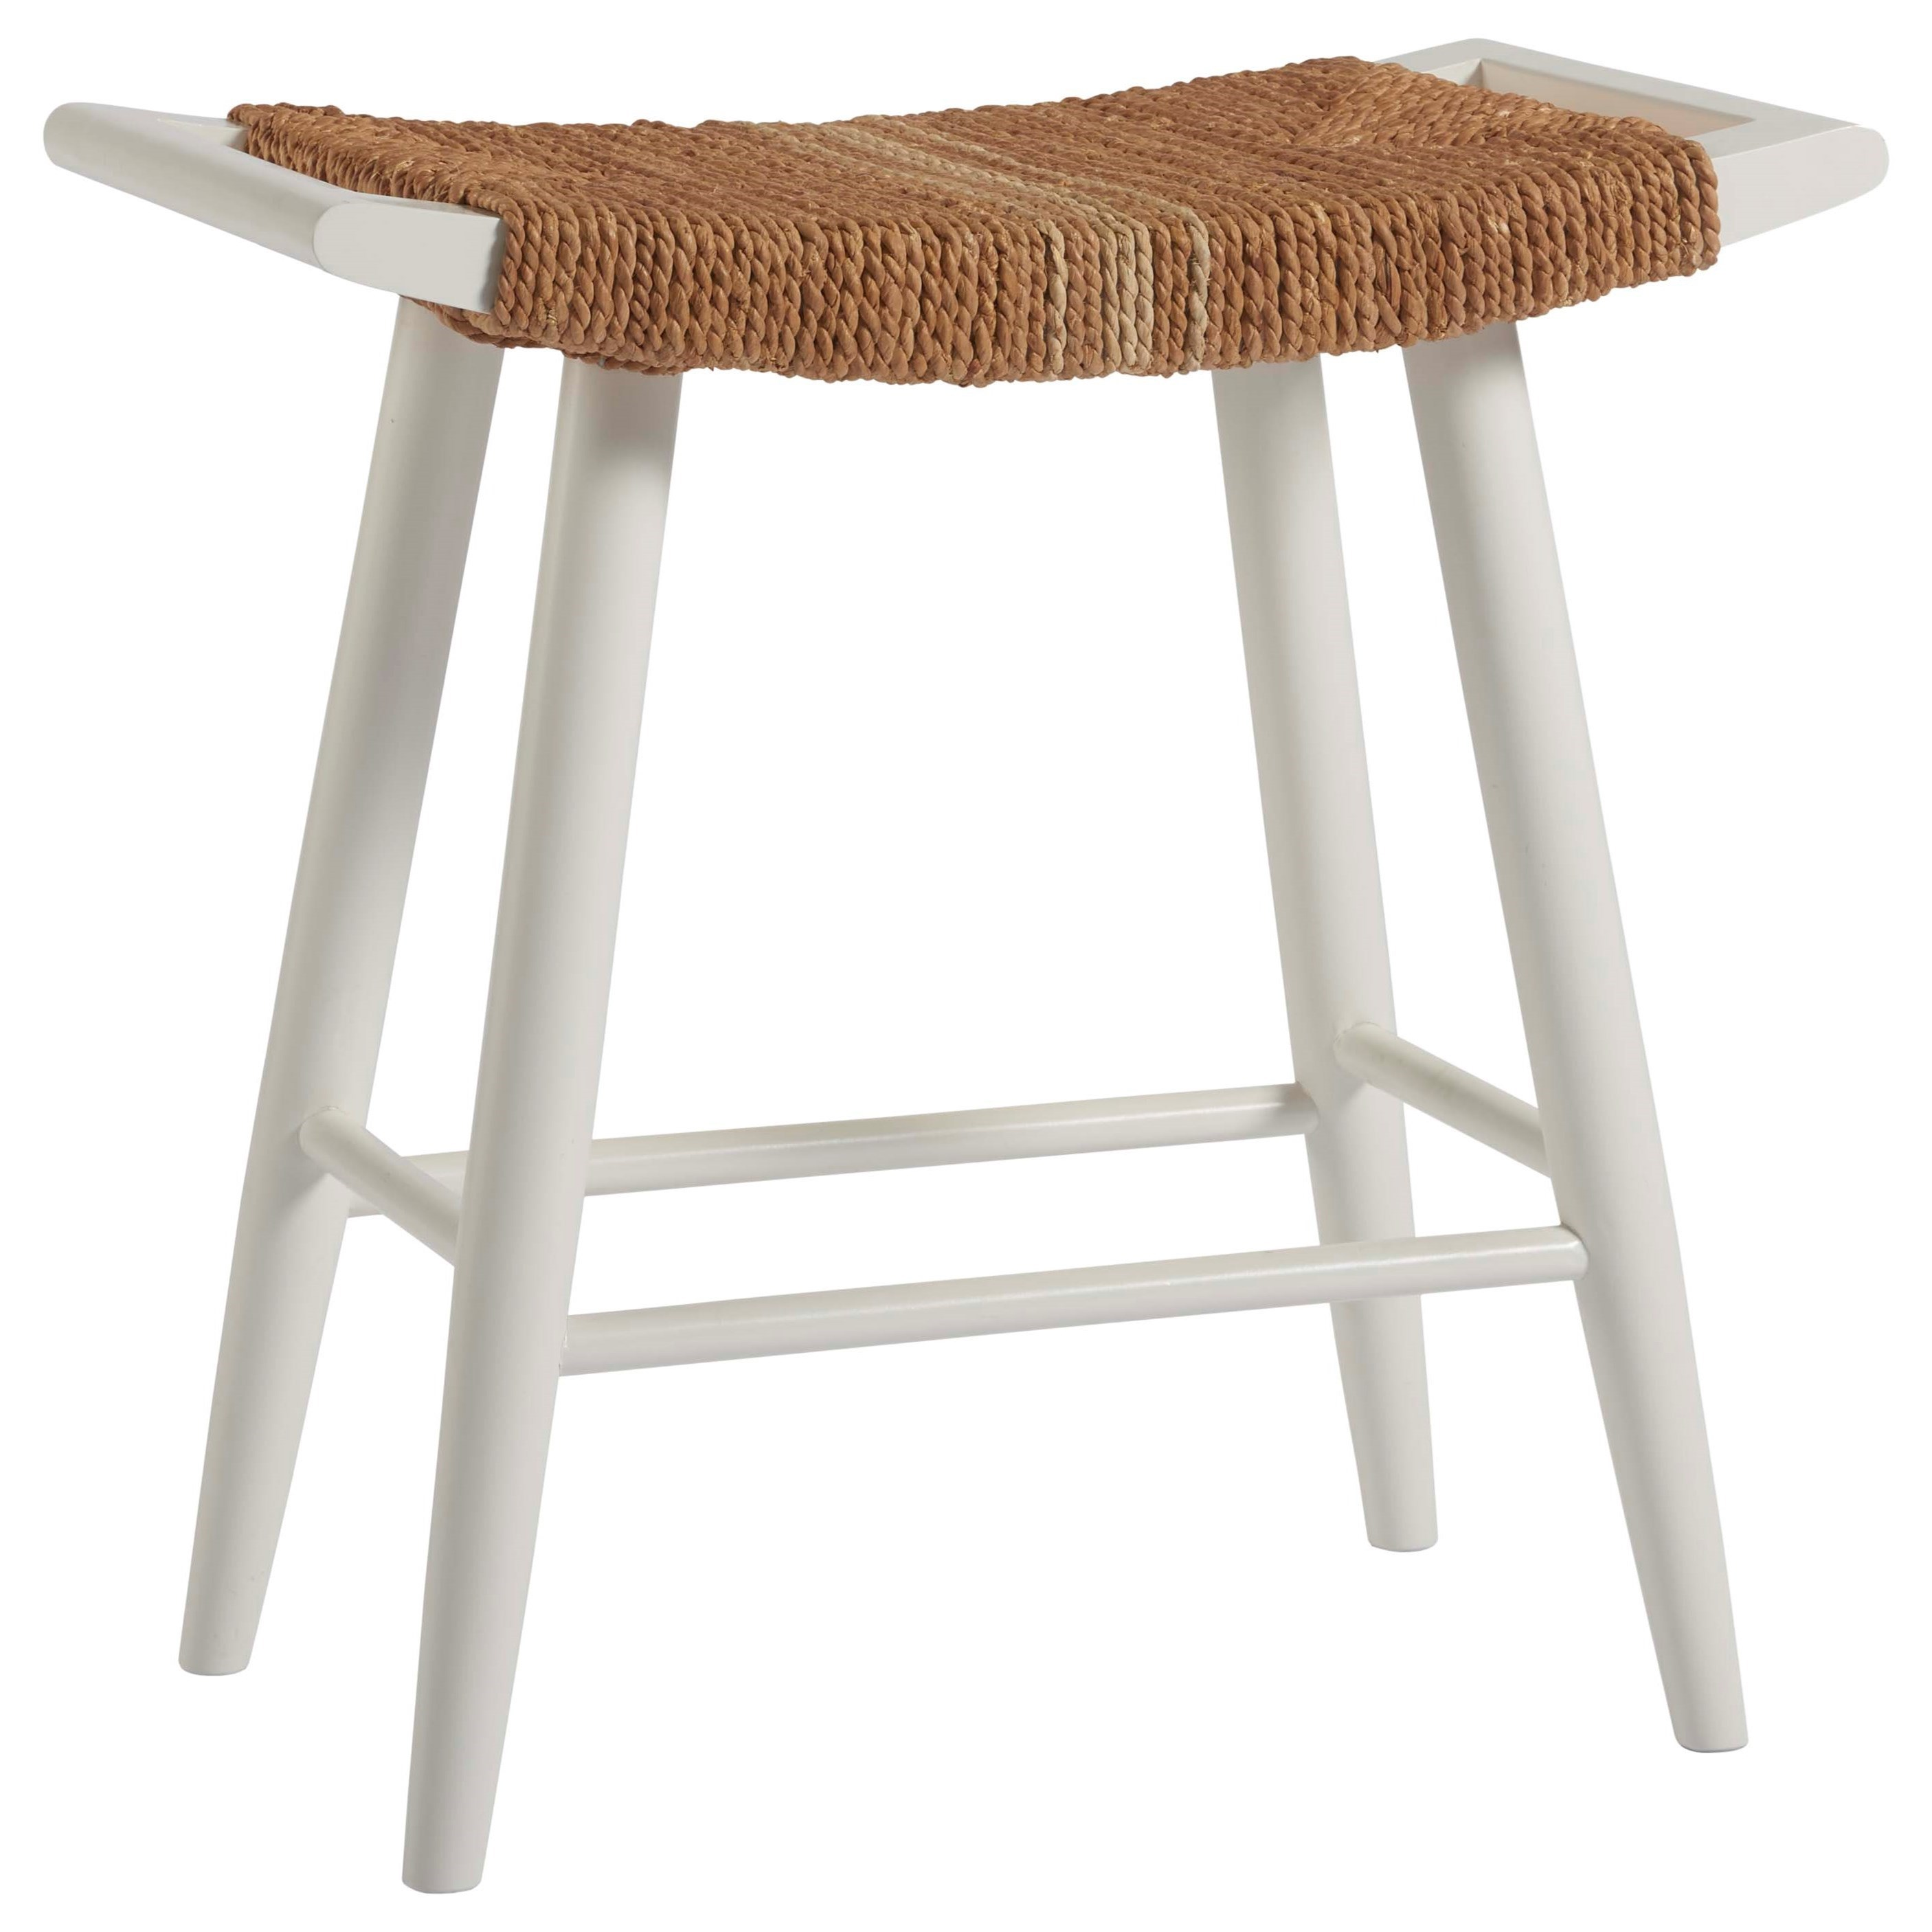 Coastal Living Home - Escape Counter Stool by Universal at HomeWorld Furniture